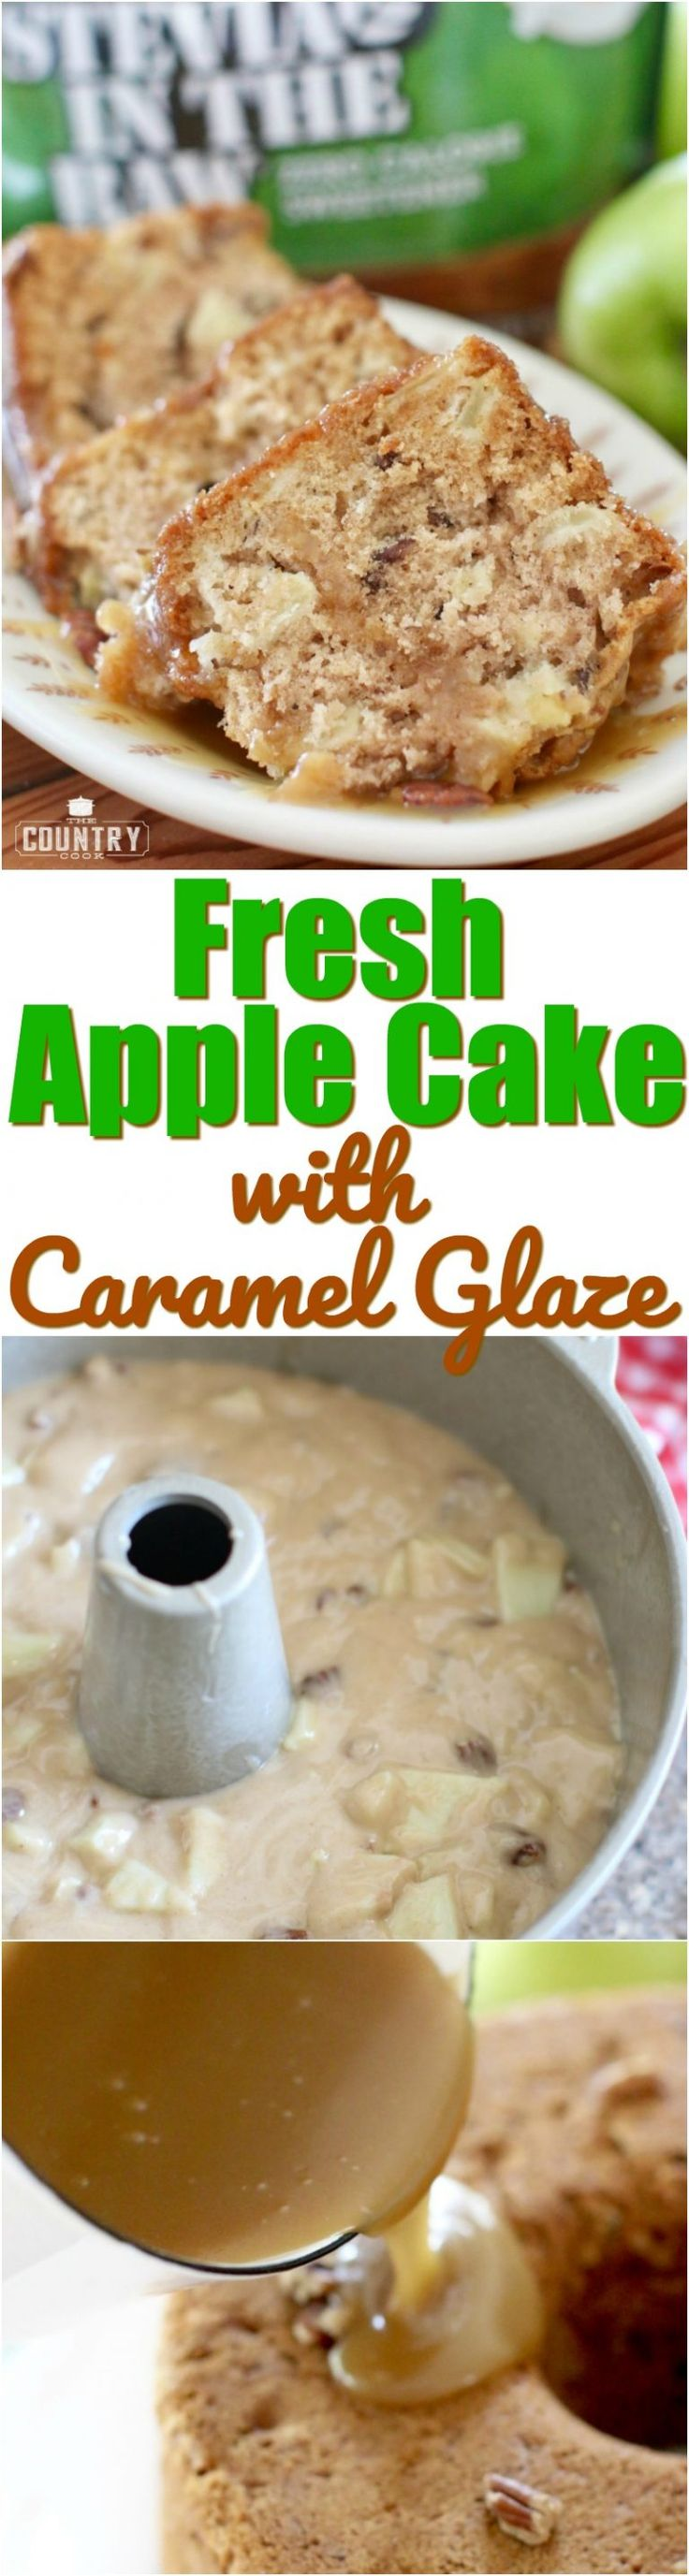 Fresh Apple Cake with Caramel Glaze and Stevia #intheraw recipe from The Country Cook #ad #apple #cake #dessert #caramel